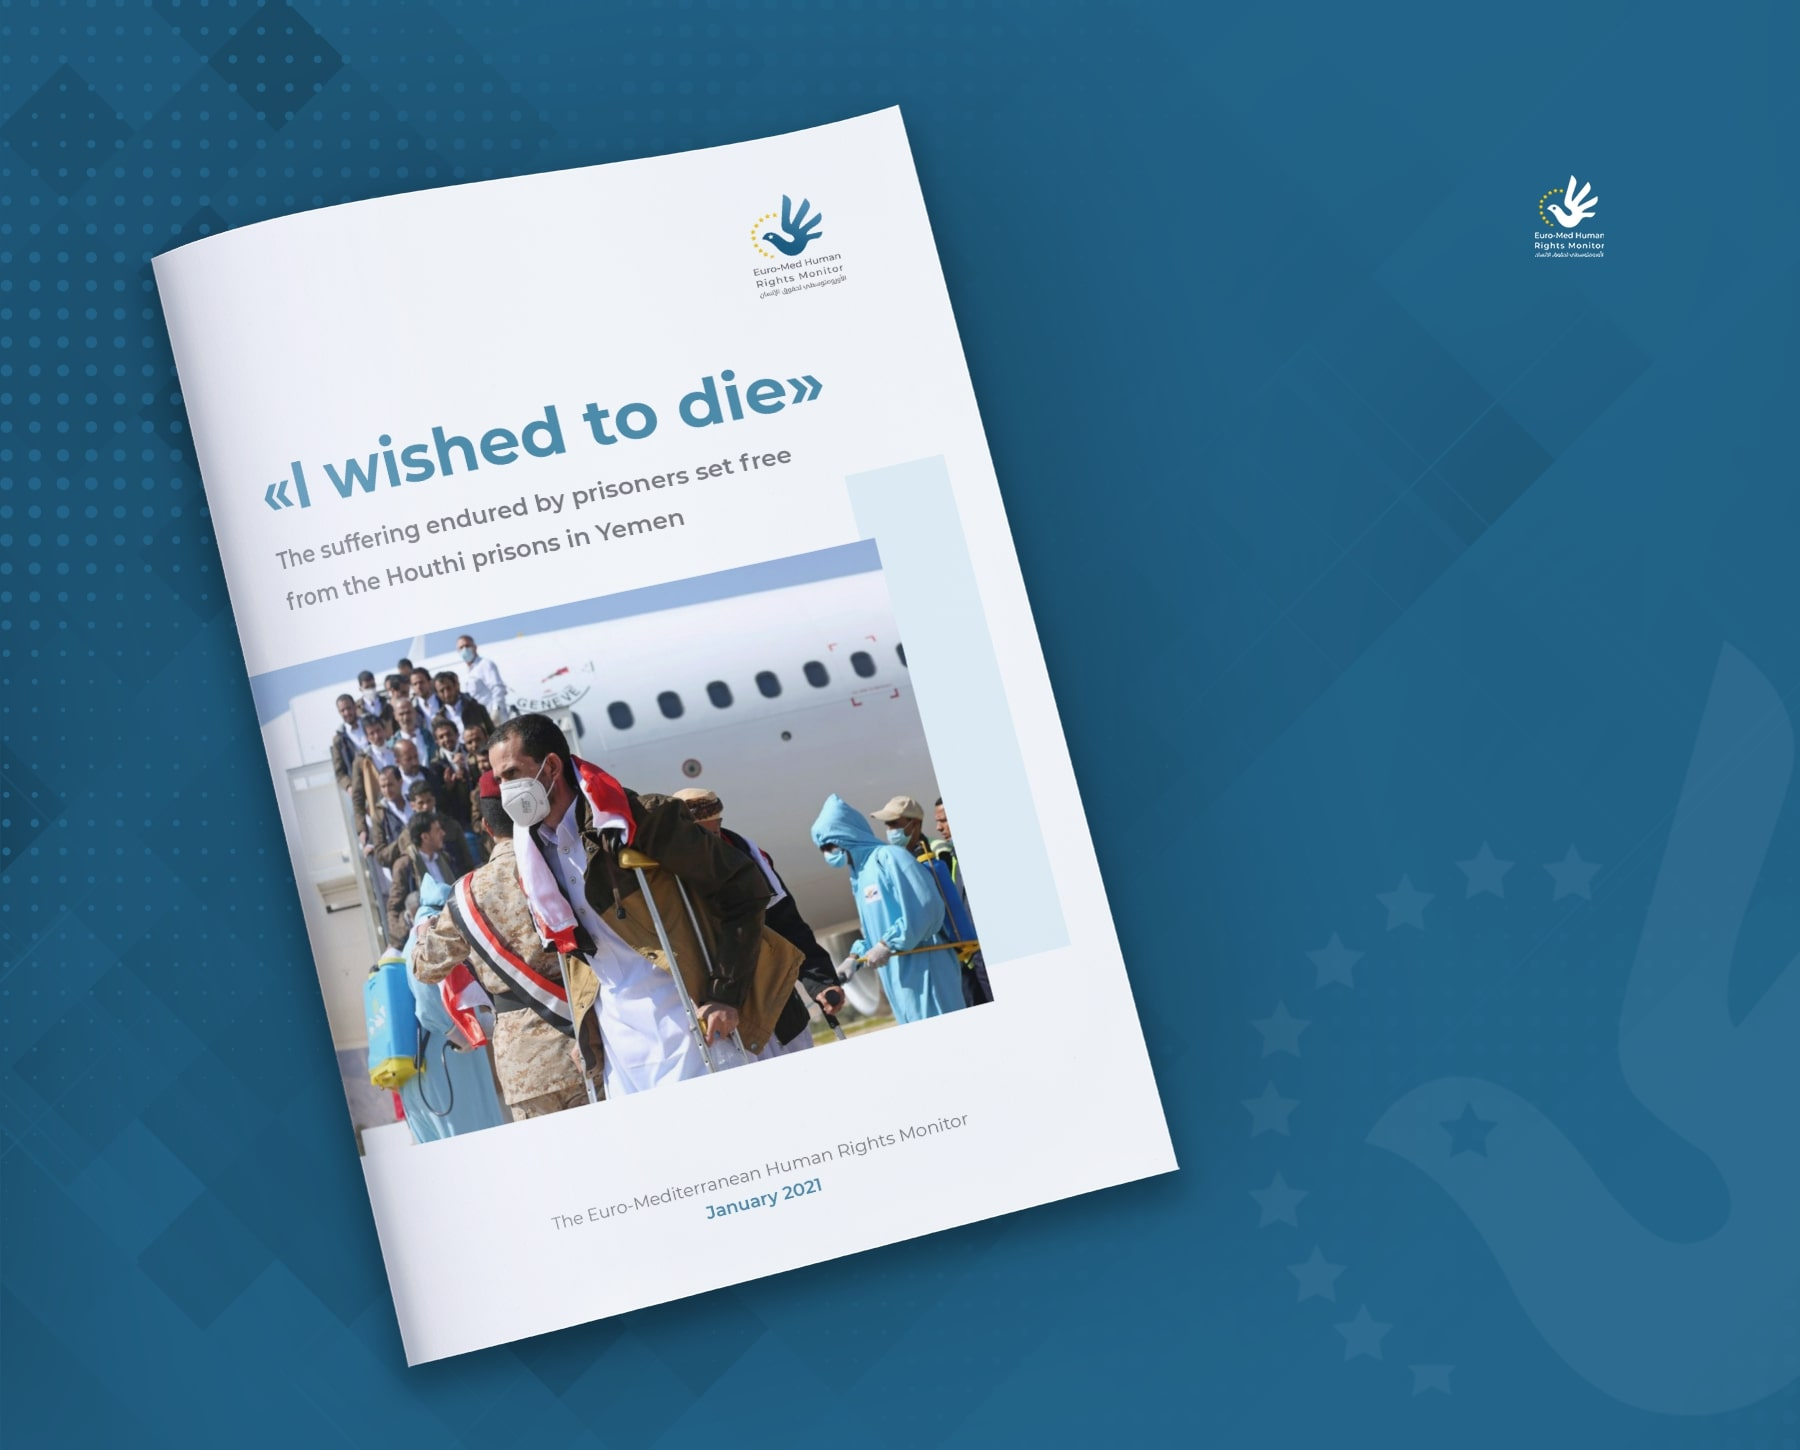 """I wished to die"":  New report documenting the suffering of prisoners in Houthi prisons"